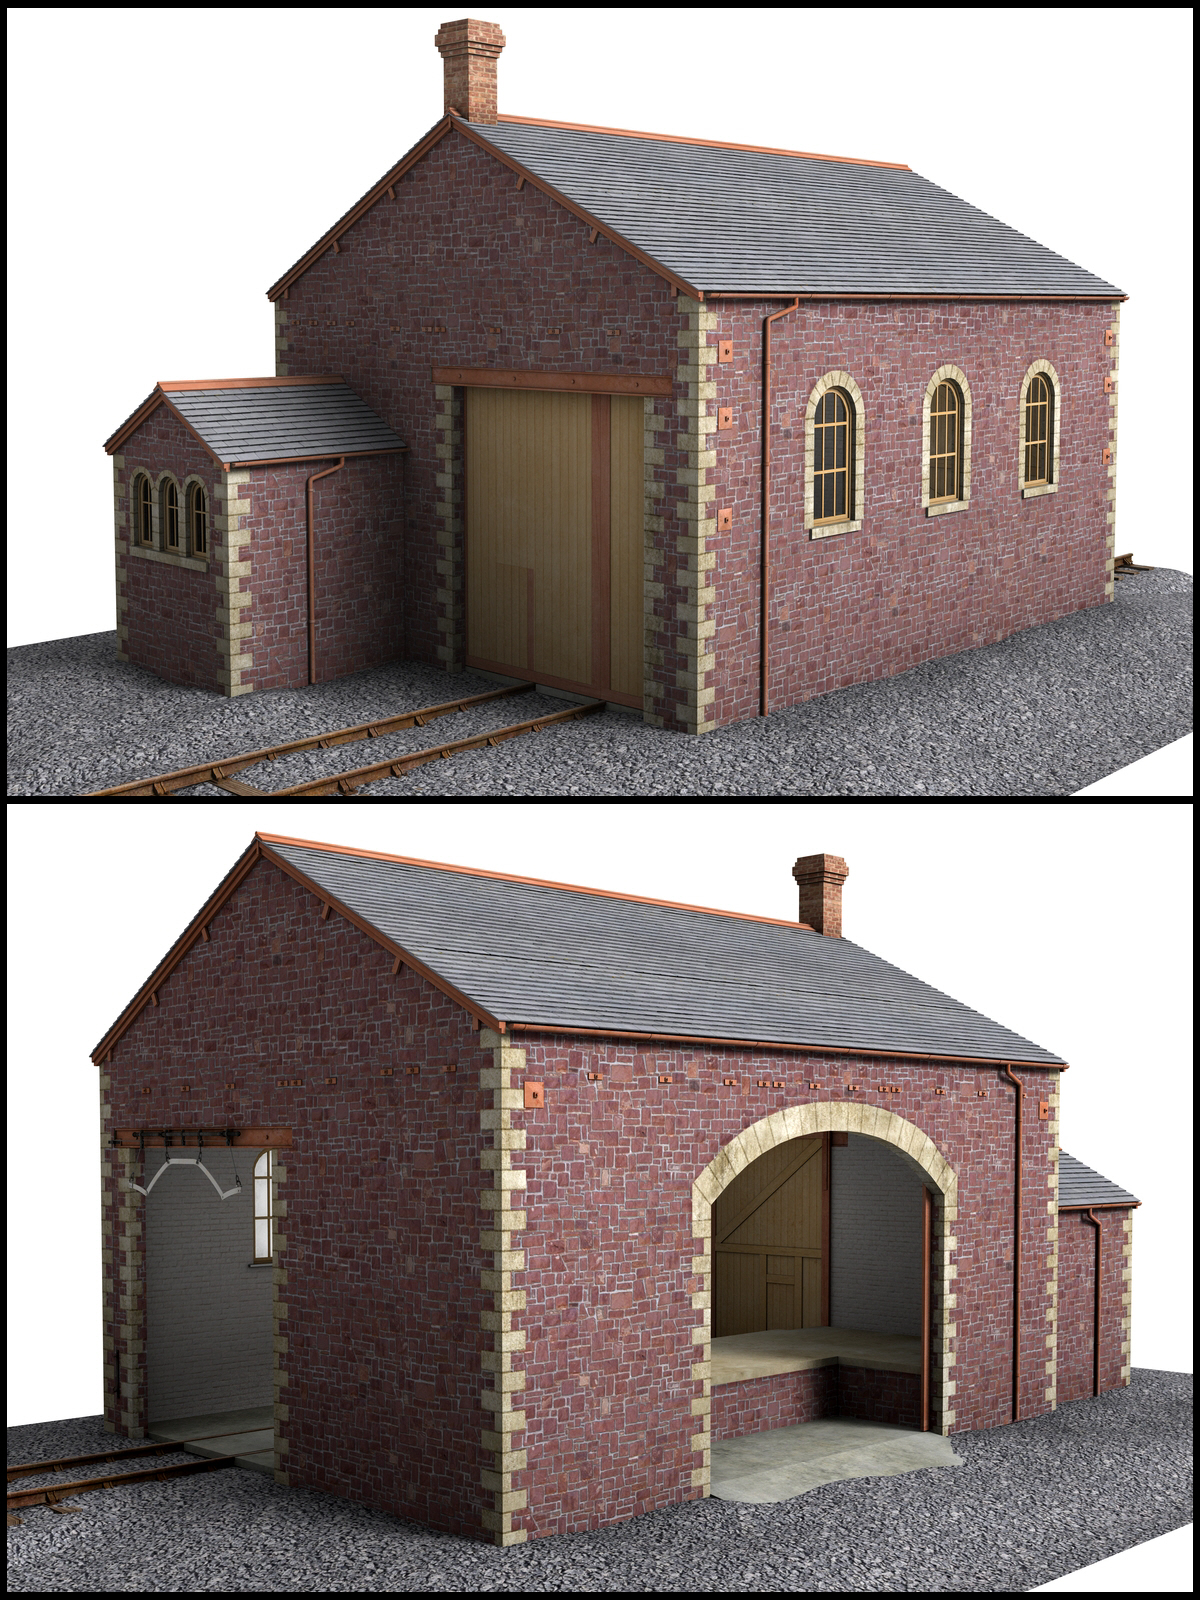 Goods shed and yard crane - Extended License by DryJack